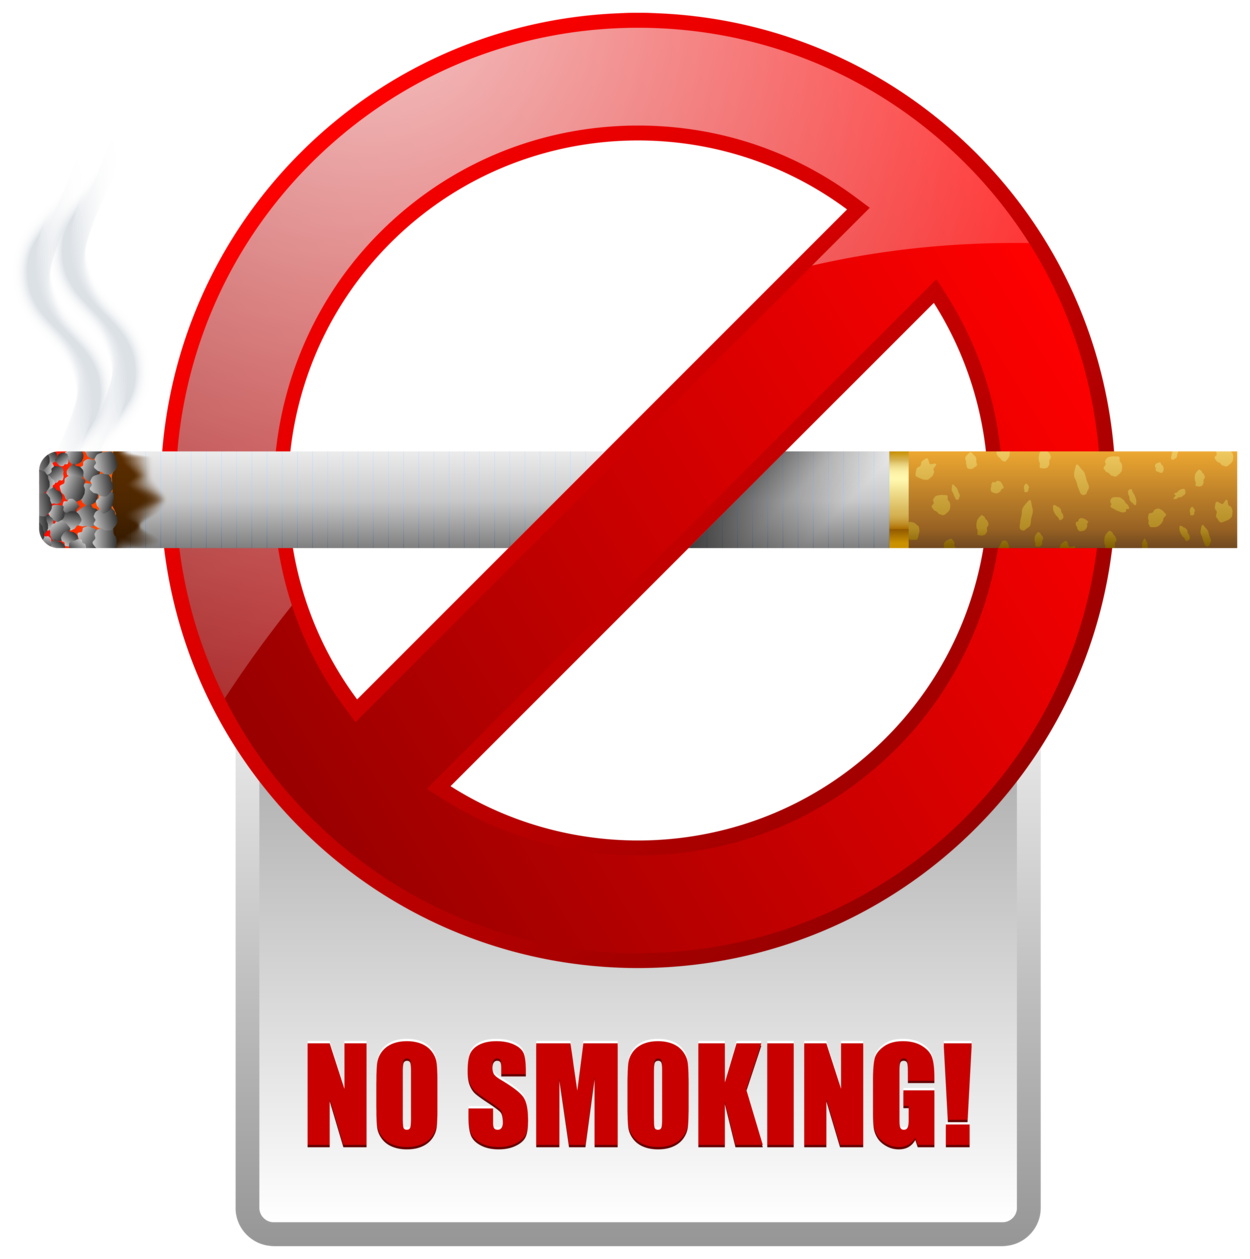 Red No Smoking Warning Sign PNG Clipart